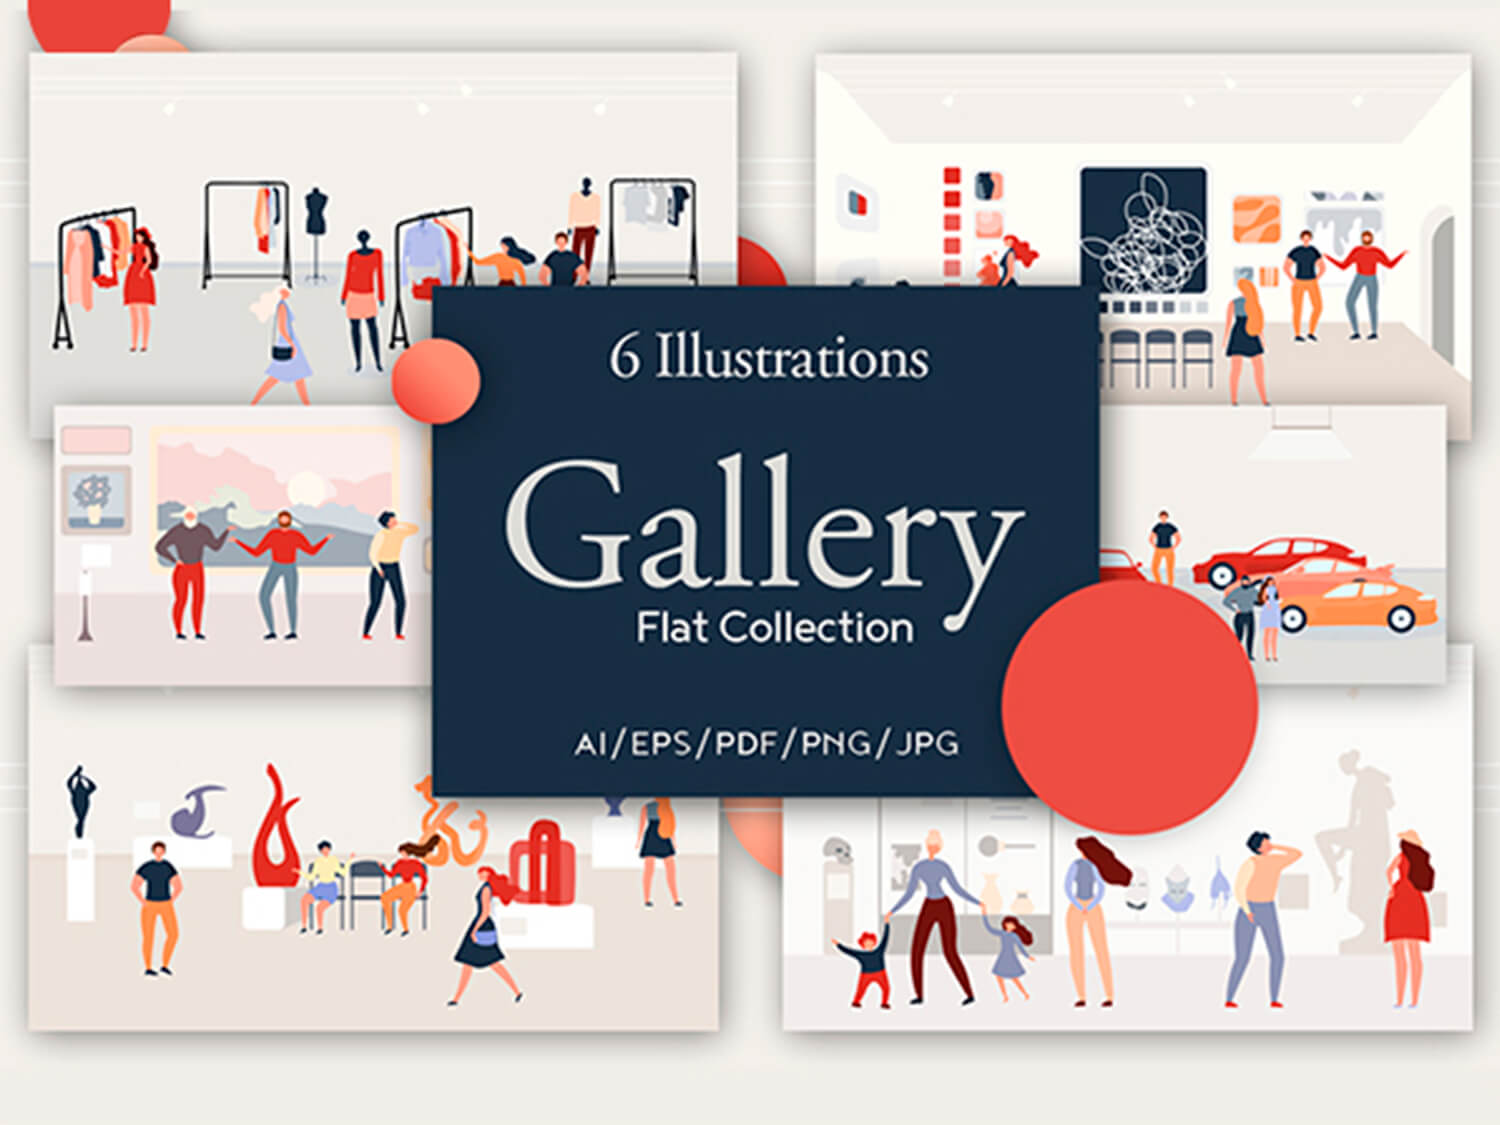 24-in-1 Flaticons Bundle: 6 Gallery Flat Illustrations